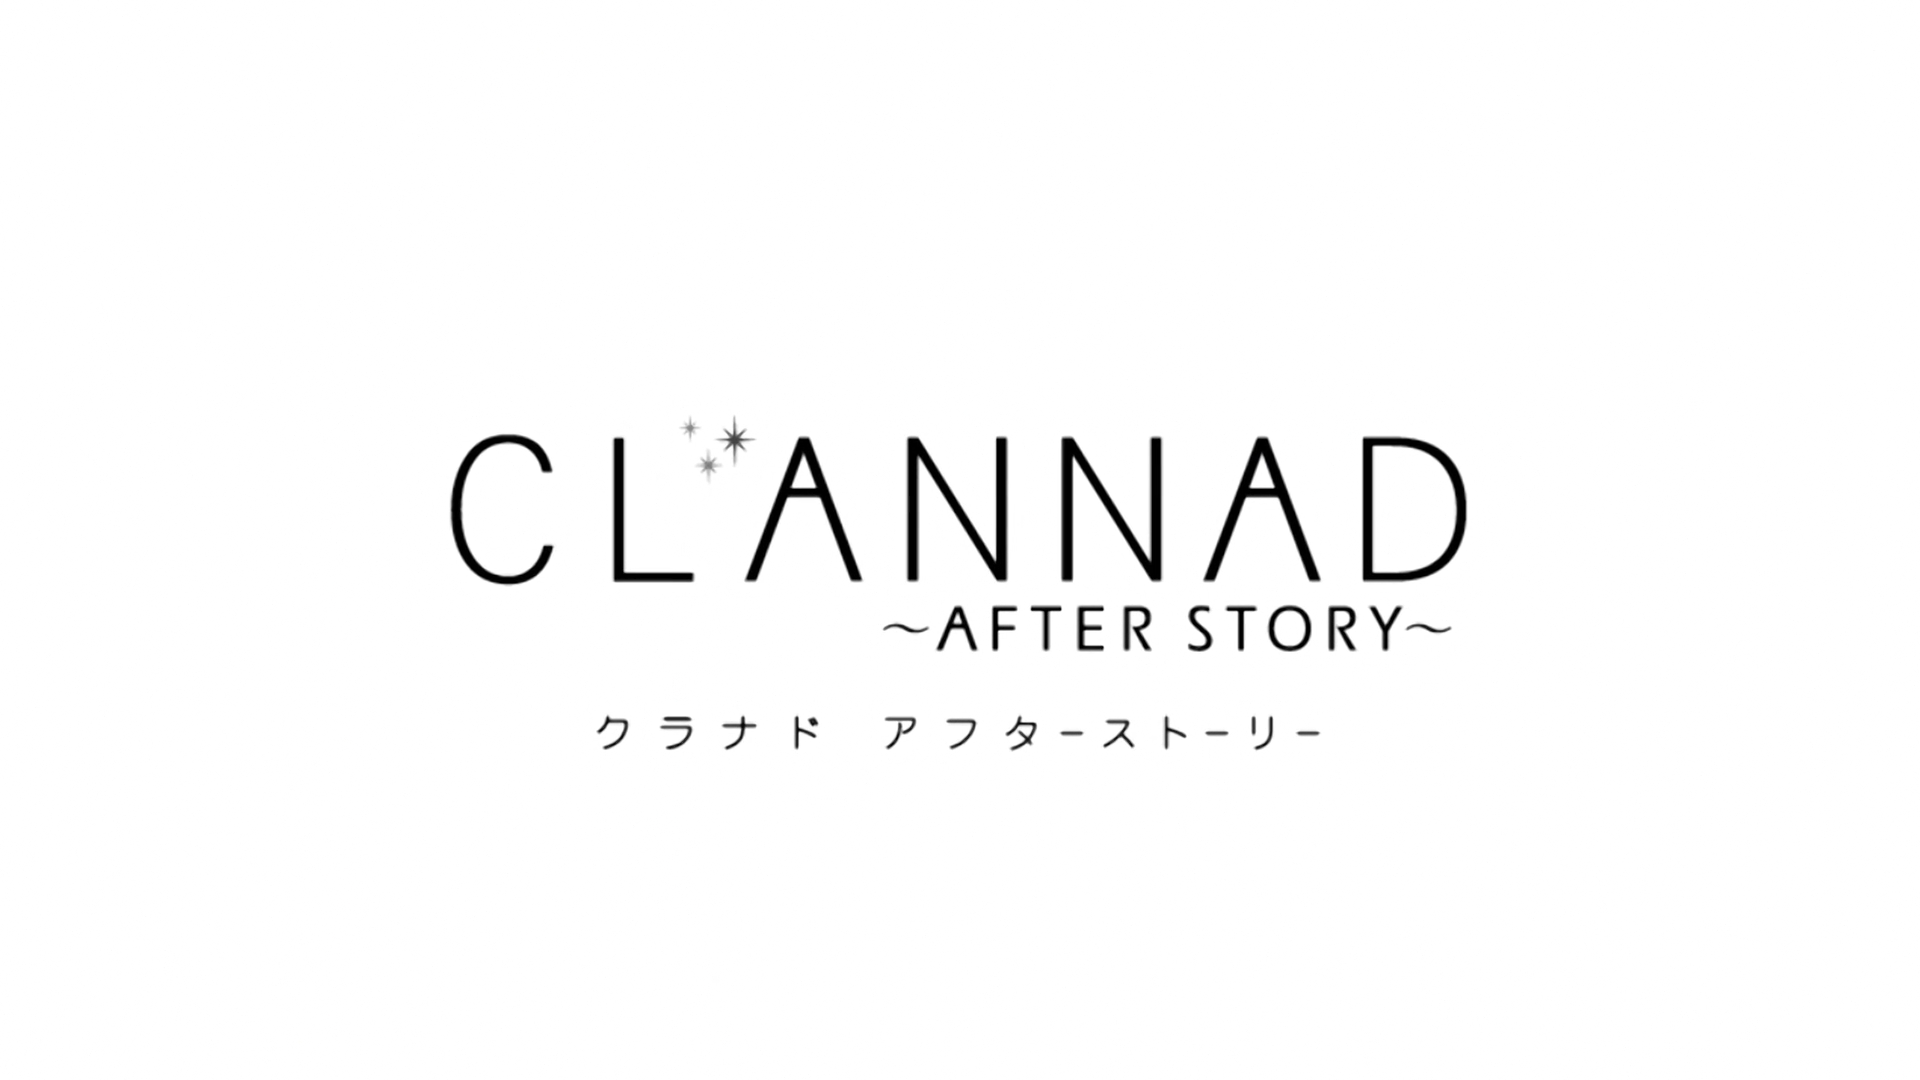 Clannad ~After Story~ (Blu-Ray) Announcement